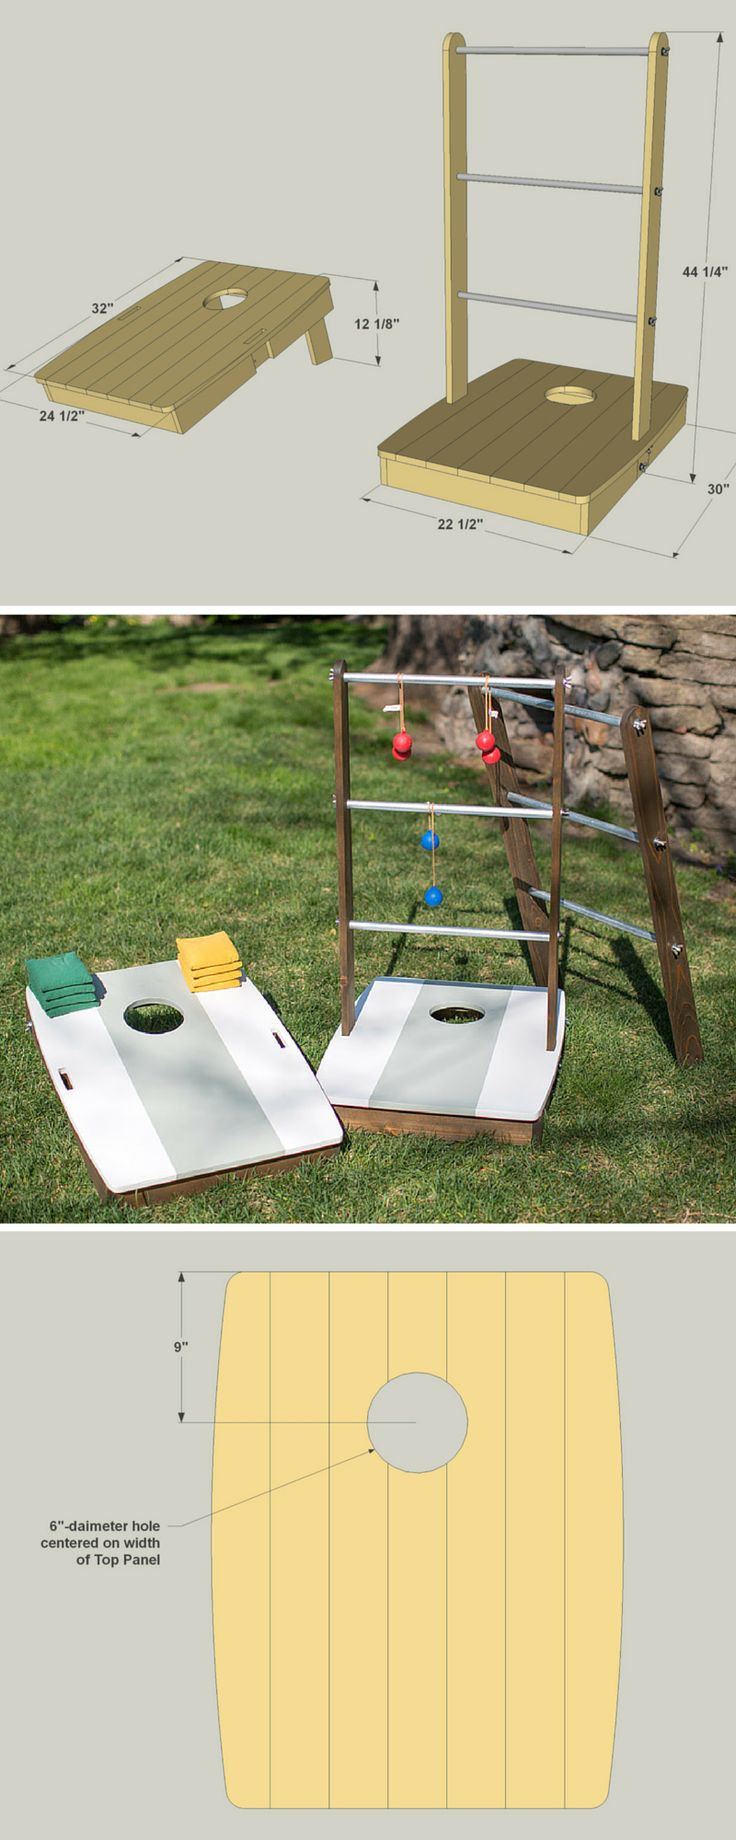 Add some fun to your outdoor living with this clever combination of two popular outdoor games. With the uprights installed, you can play ladder ball. Remove the uprights and flip down the legs, and you're ready for the fun of bean-bag toss! Get the free DIY plans at buildsomething.com